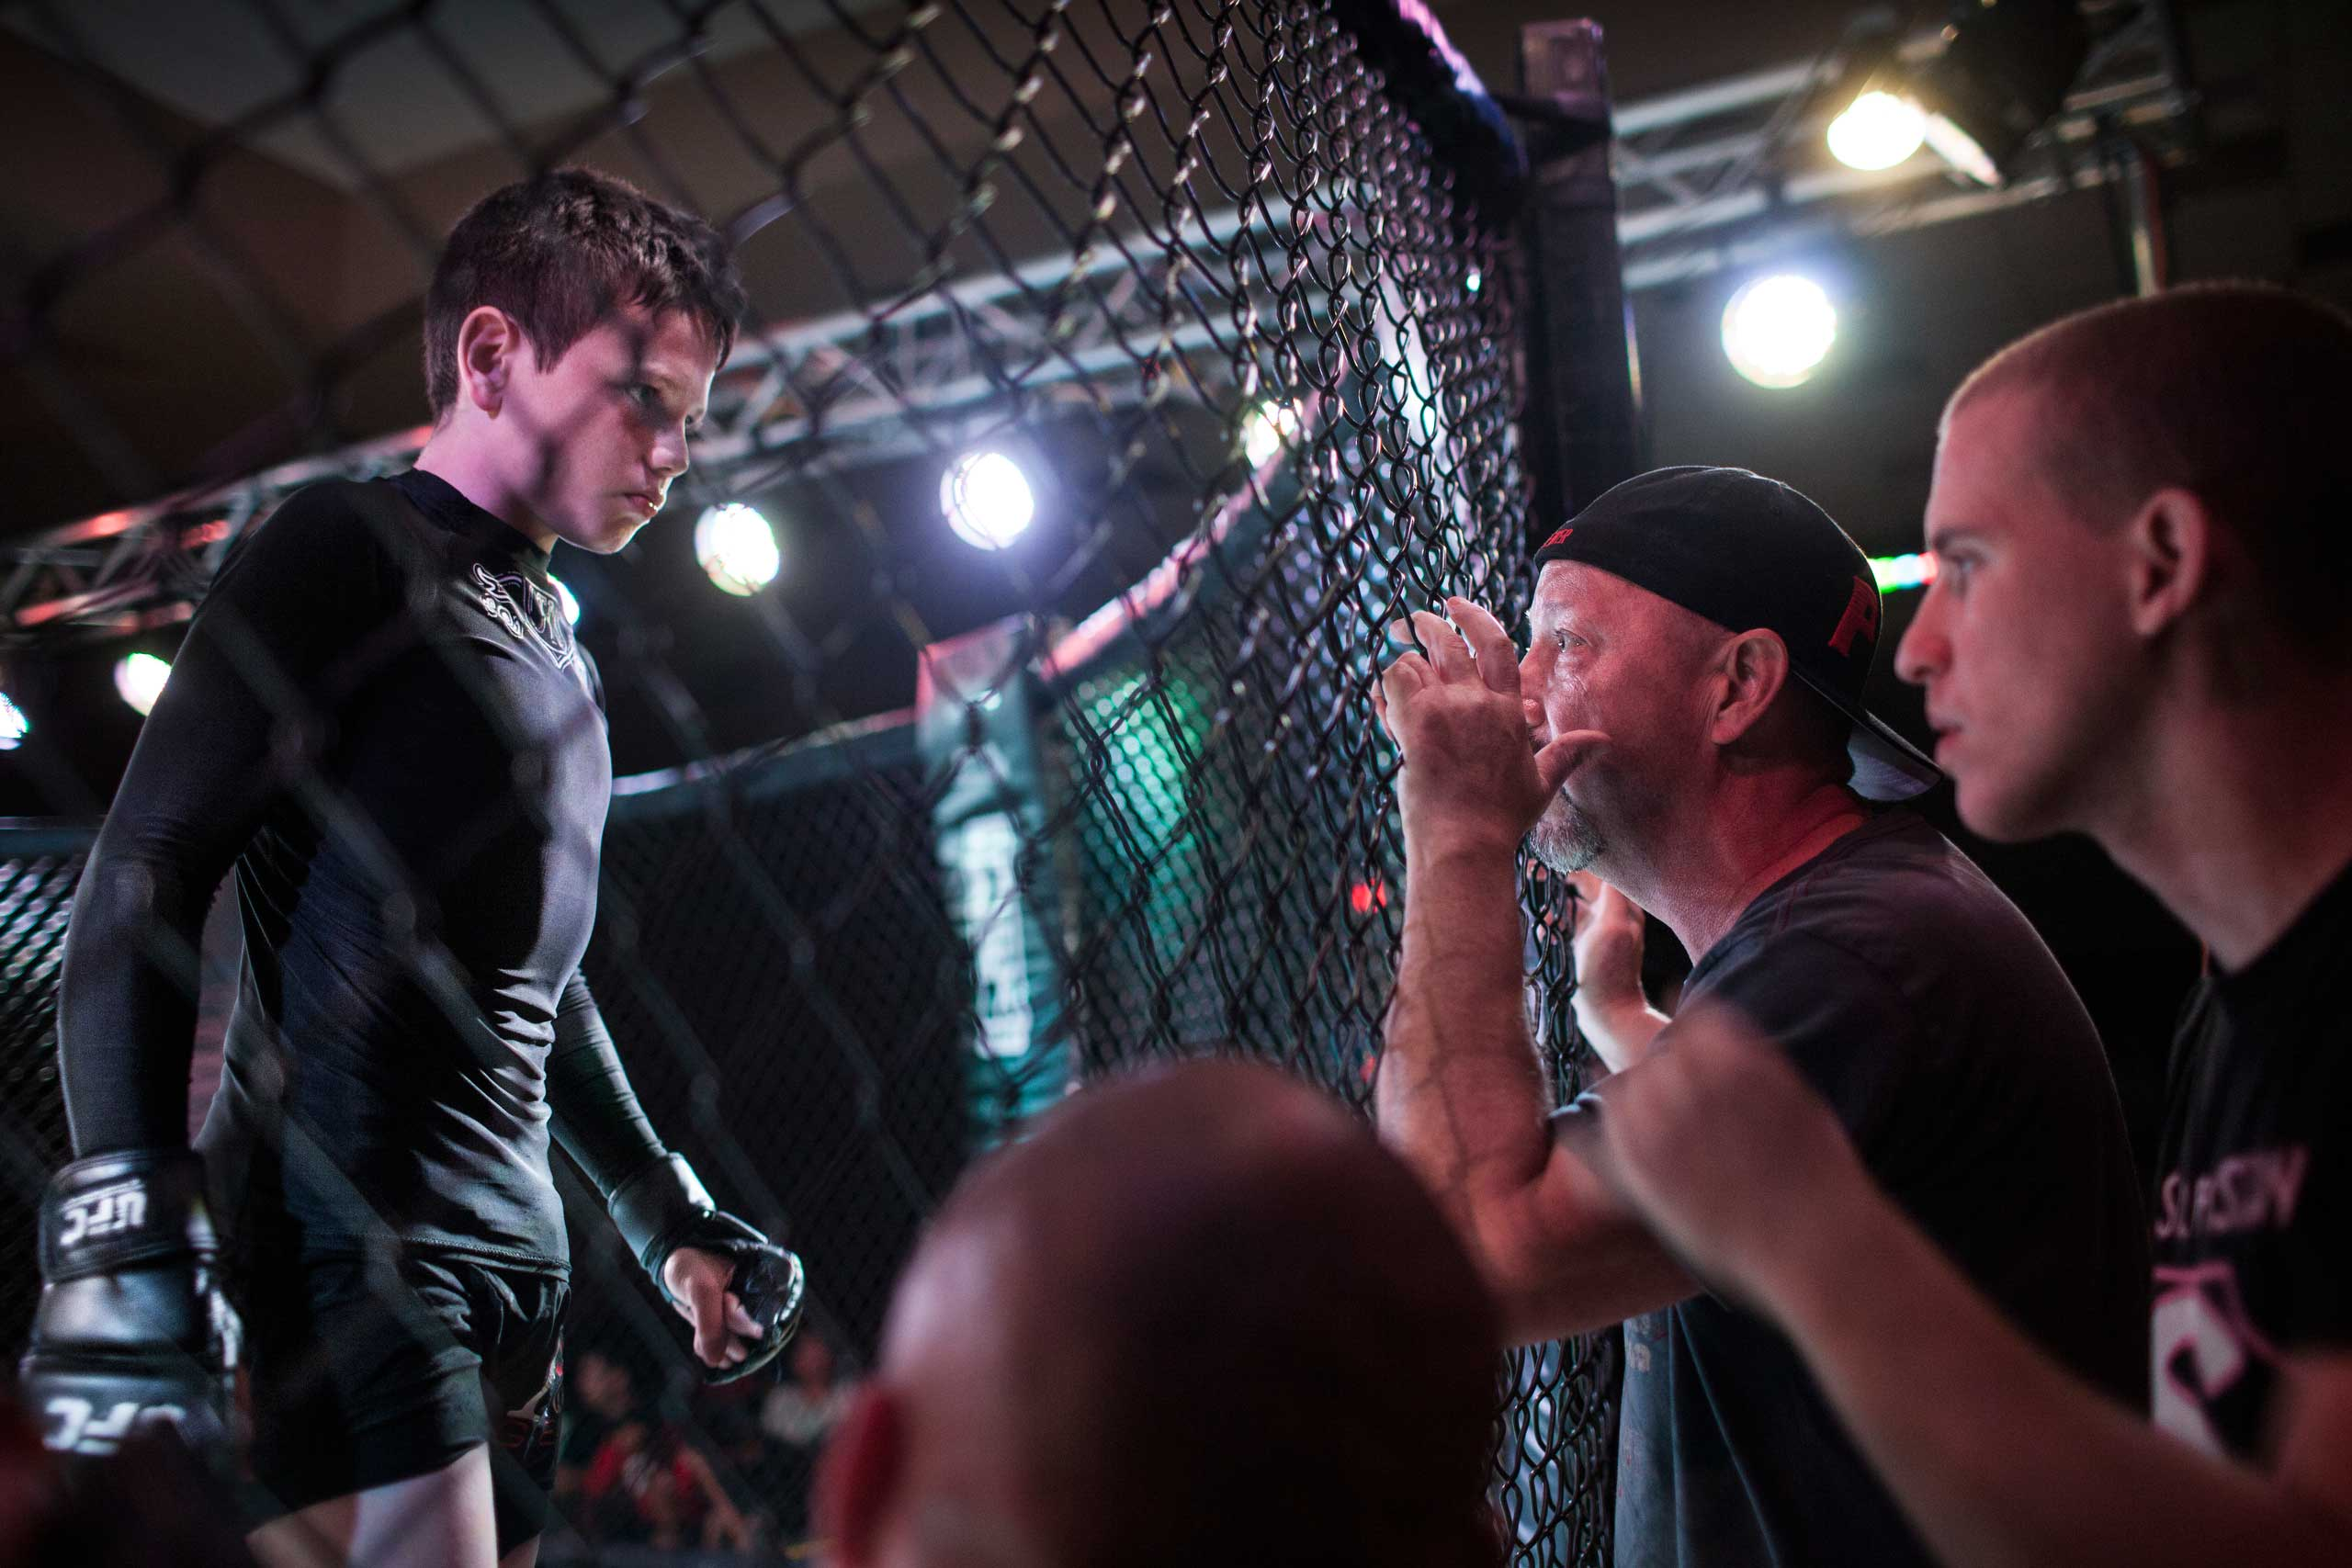 Mixed martial arts fighter Brock Locnikar, 8, in the octagon, takes precious advise from his corner men Clay Carpenter and Thiago Azeredo during United States Fight League All-star Pankration show at Blue Water Casino in Parker, Arizona,  Oct. 2013.